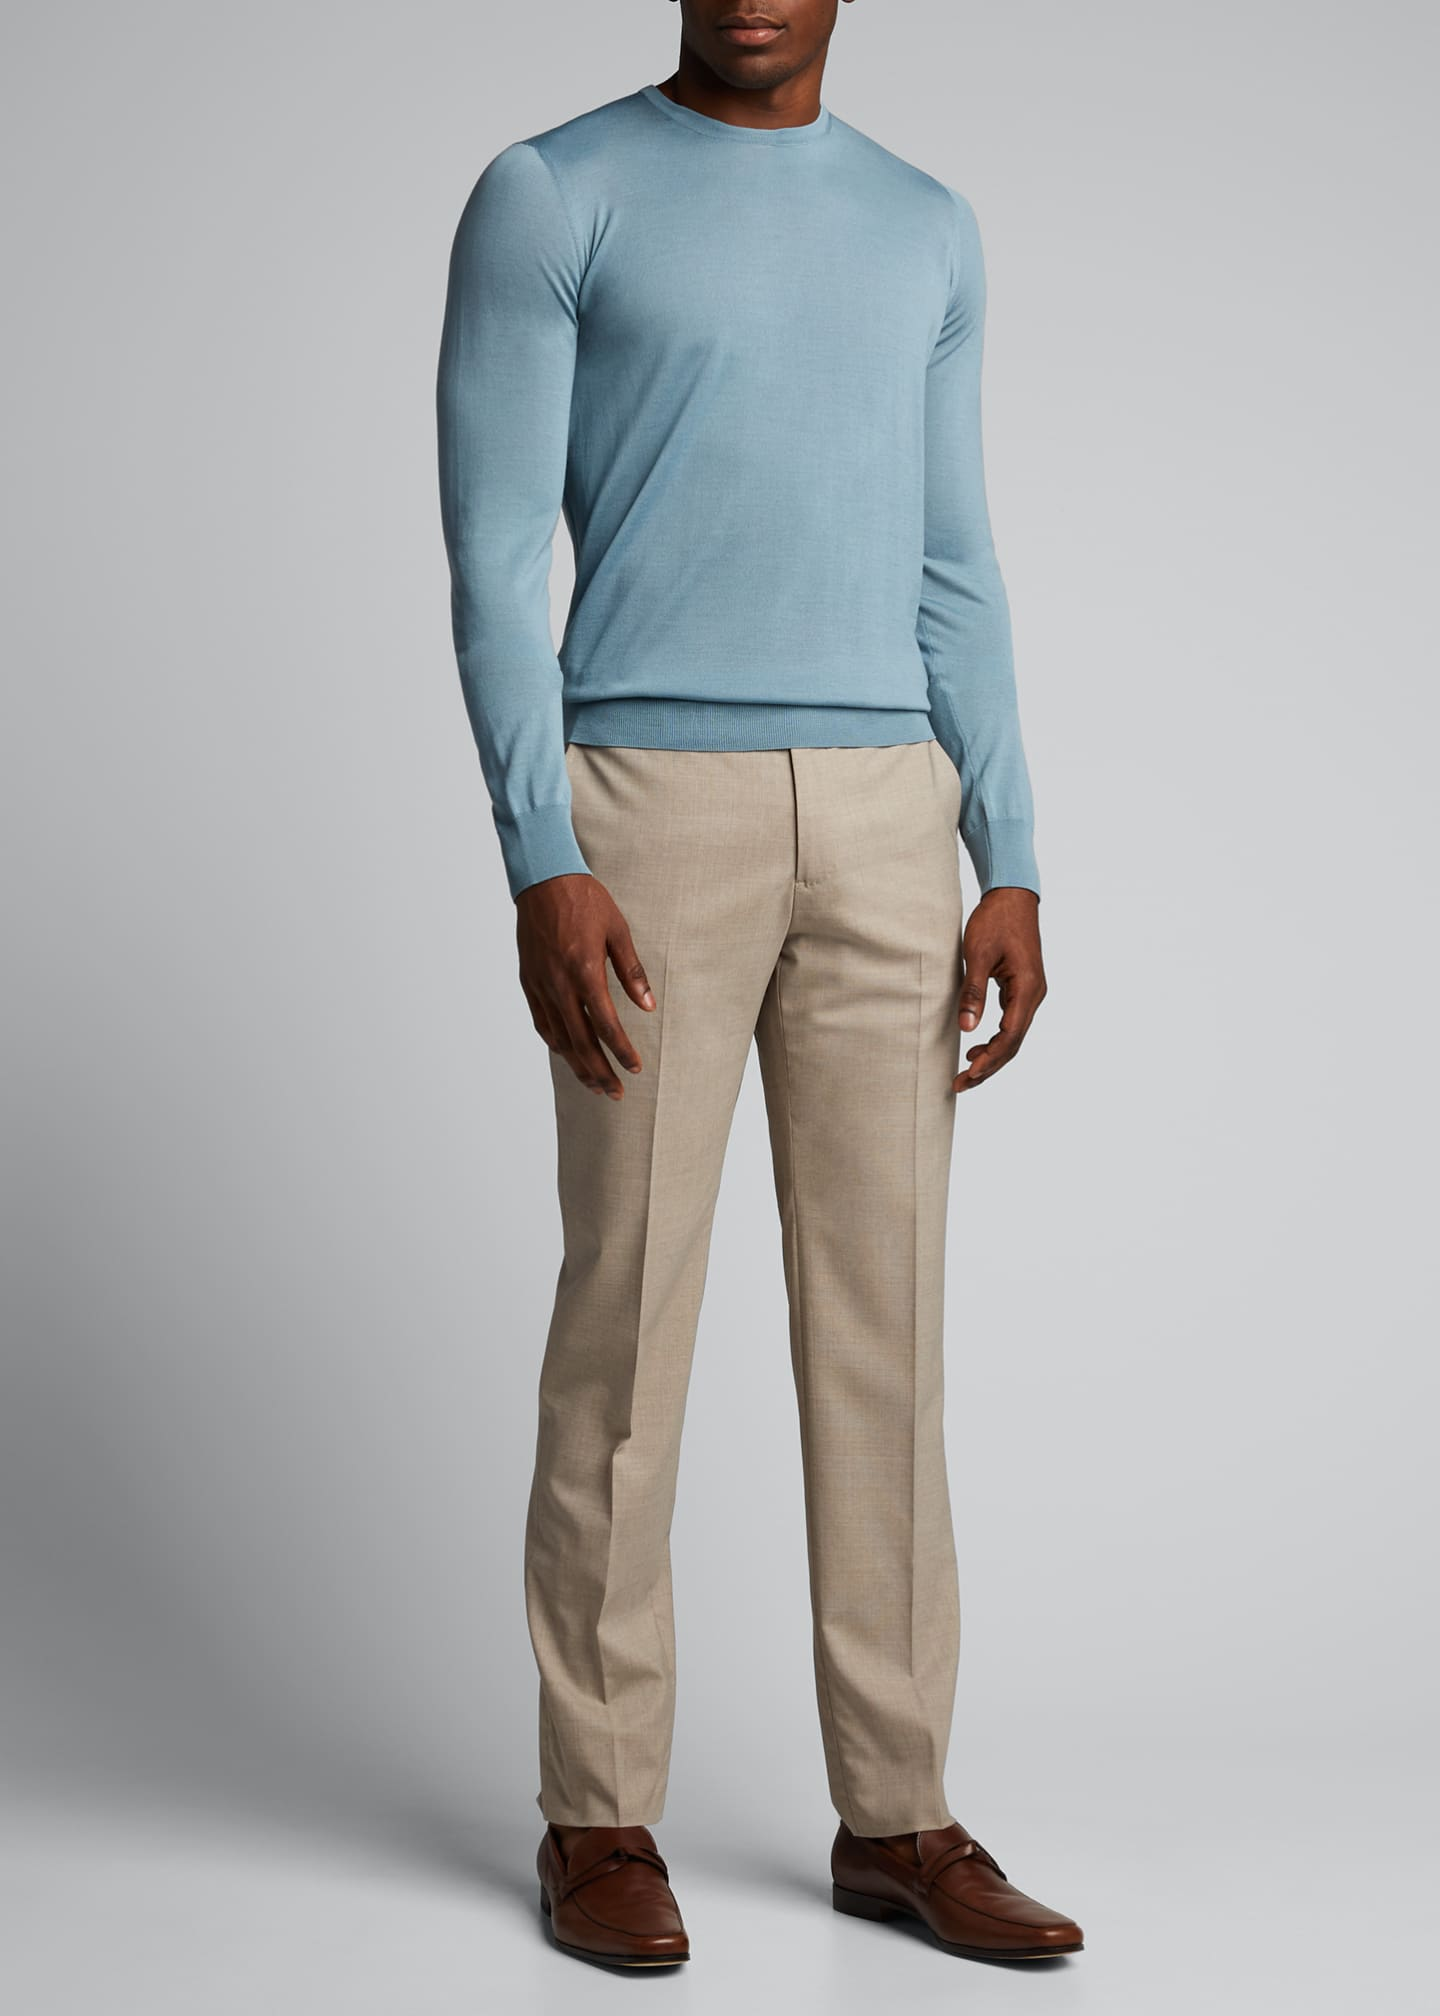 Image 1 of 5: Men's Plain Knit Wool Sweater